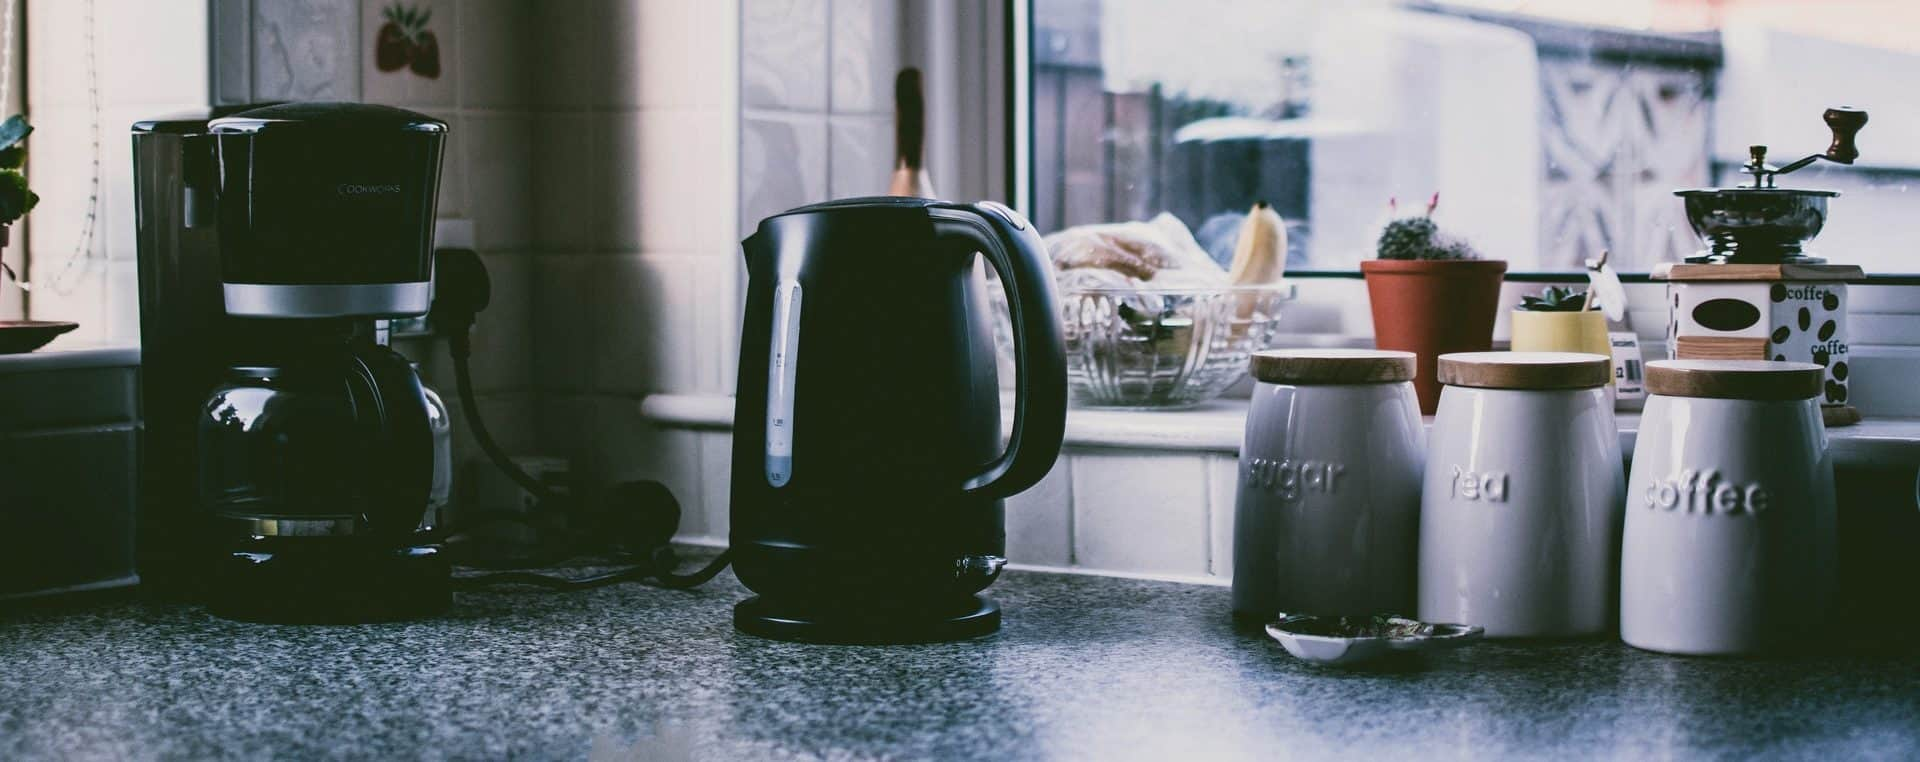 The 10 Fastest-Brewing Coffee Makers